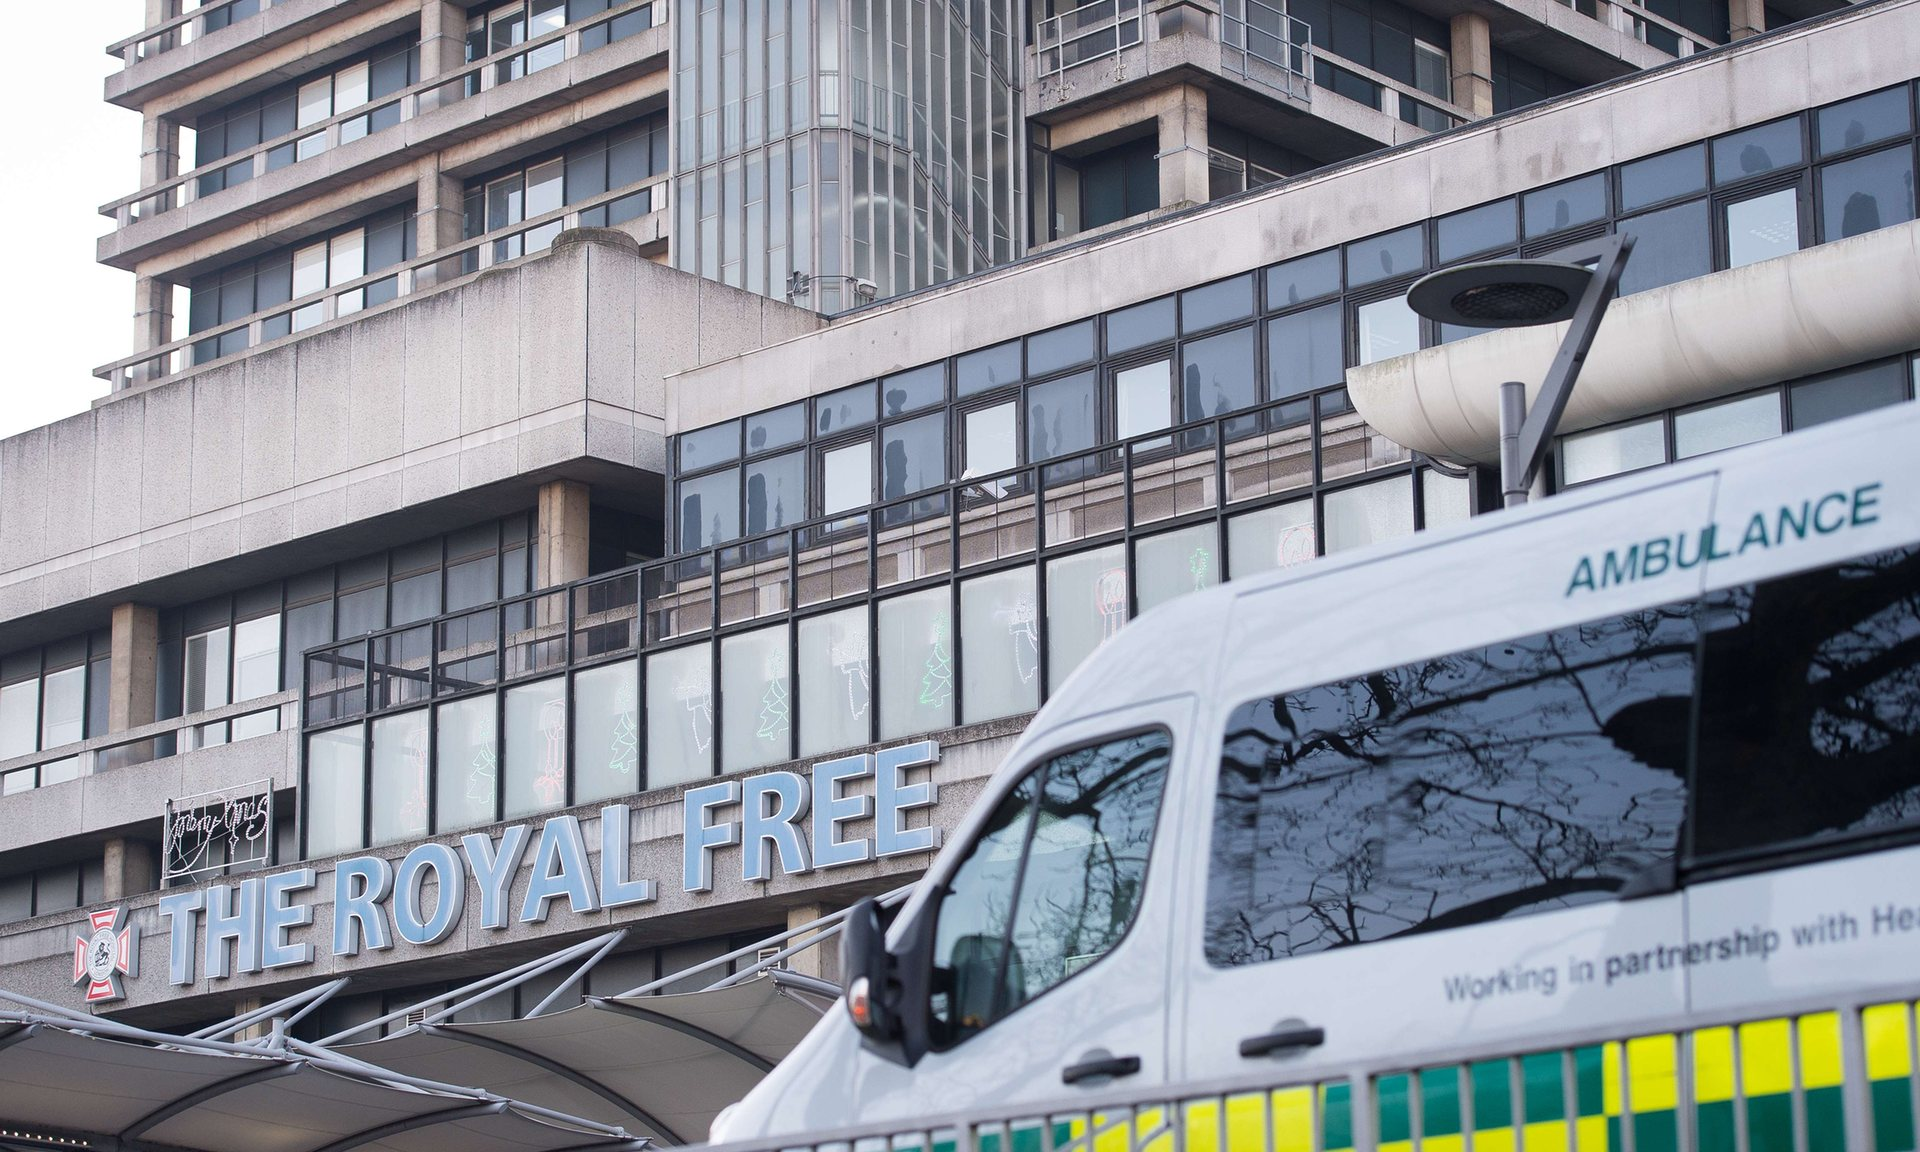 Google has been given access to the details of up to 1.6 million patients from the Royal Free Hospital Trust. Photograph: Leon Neal/AFP/Getty Images